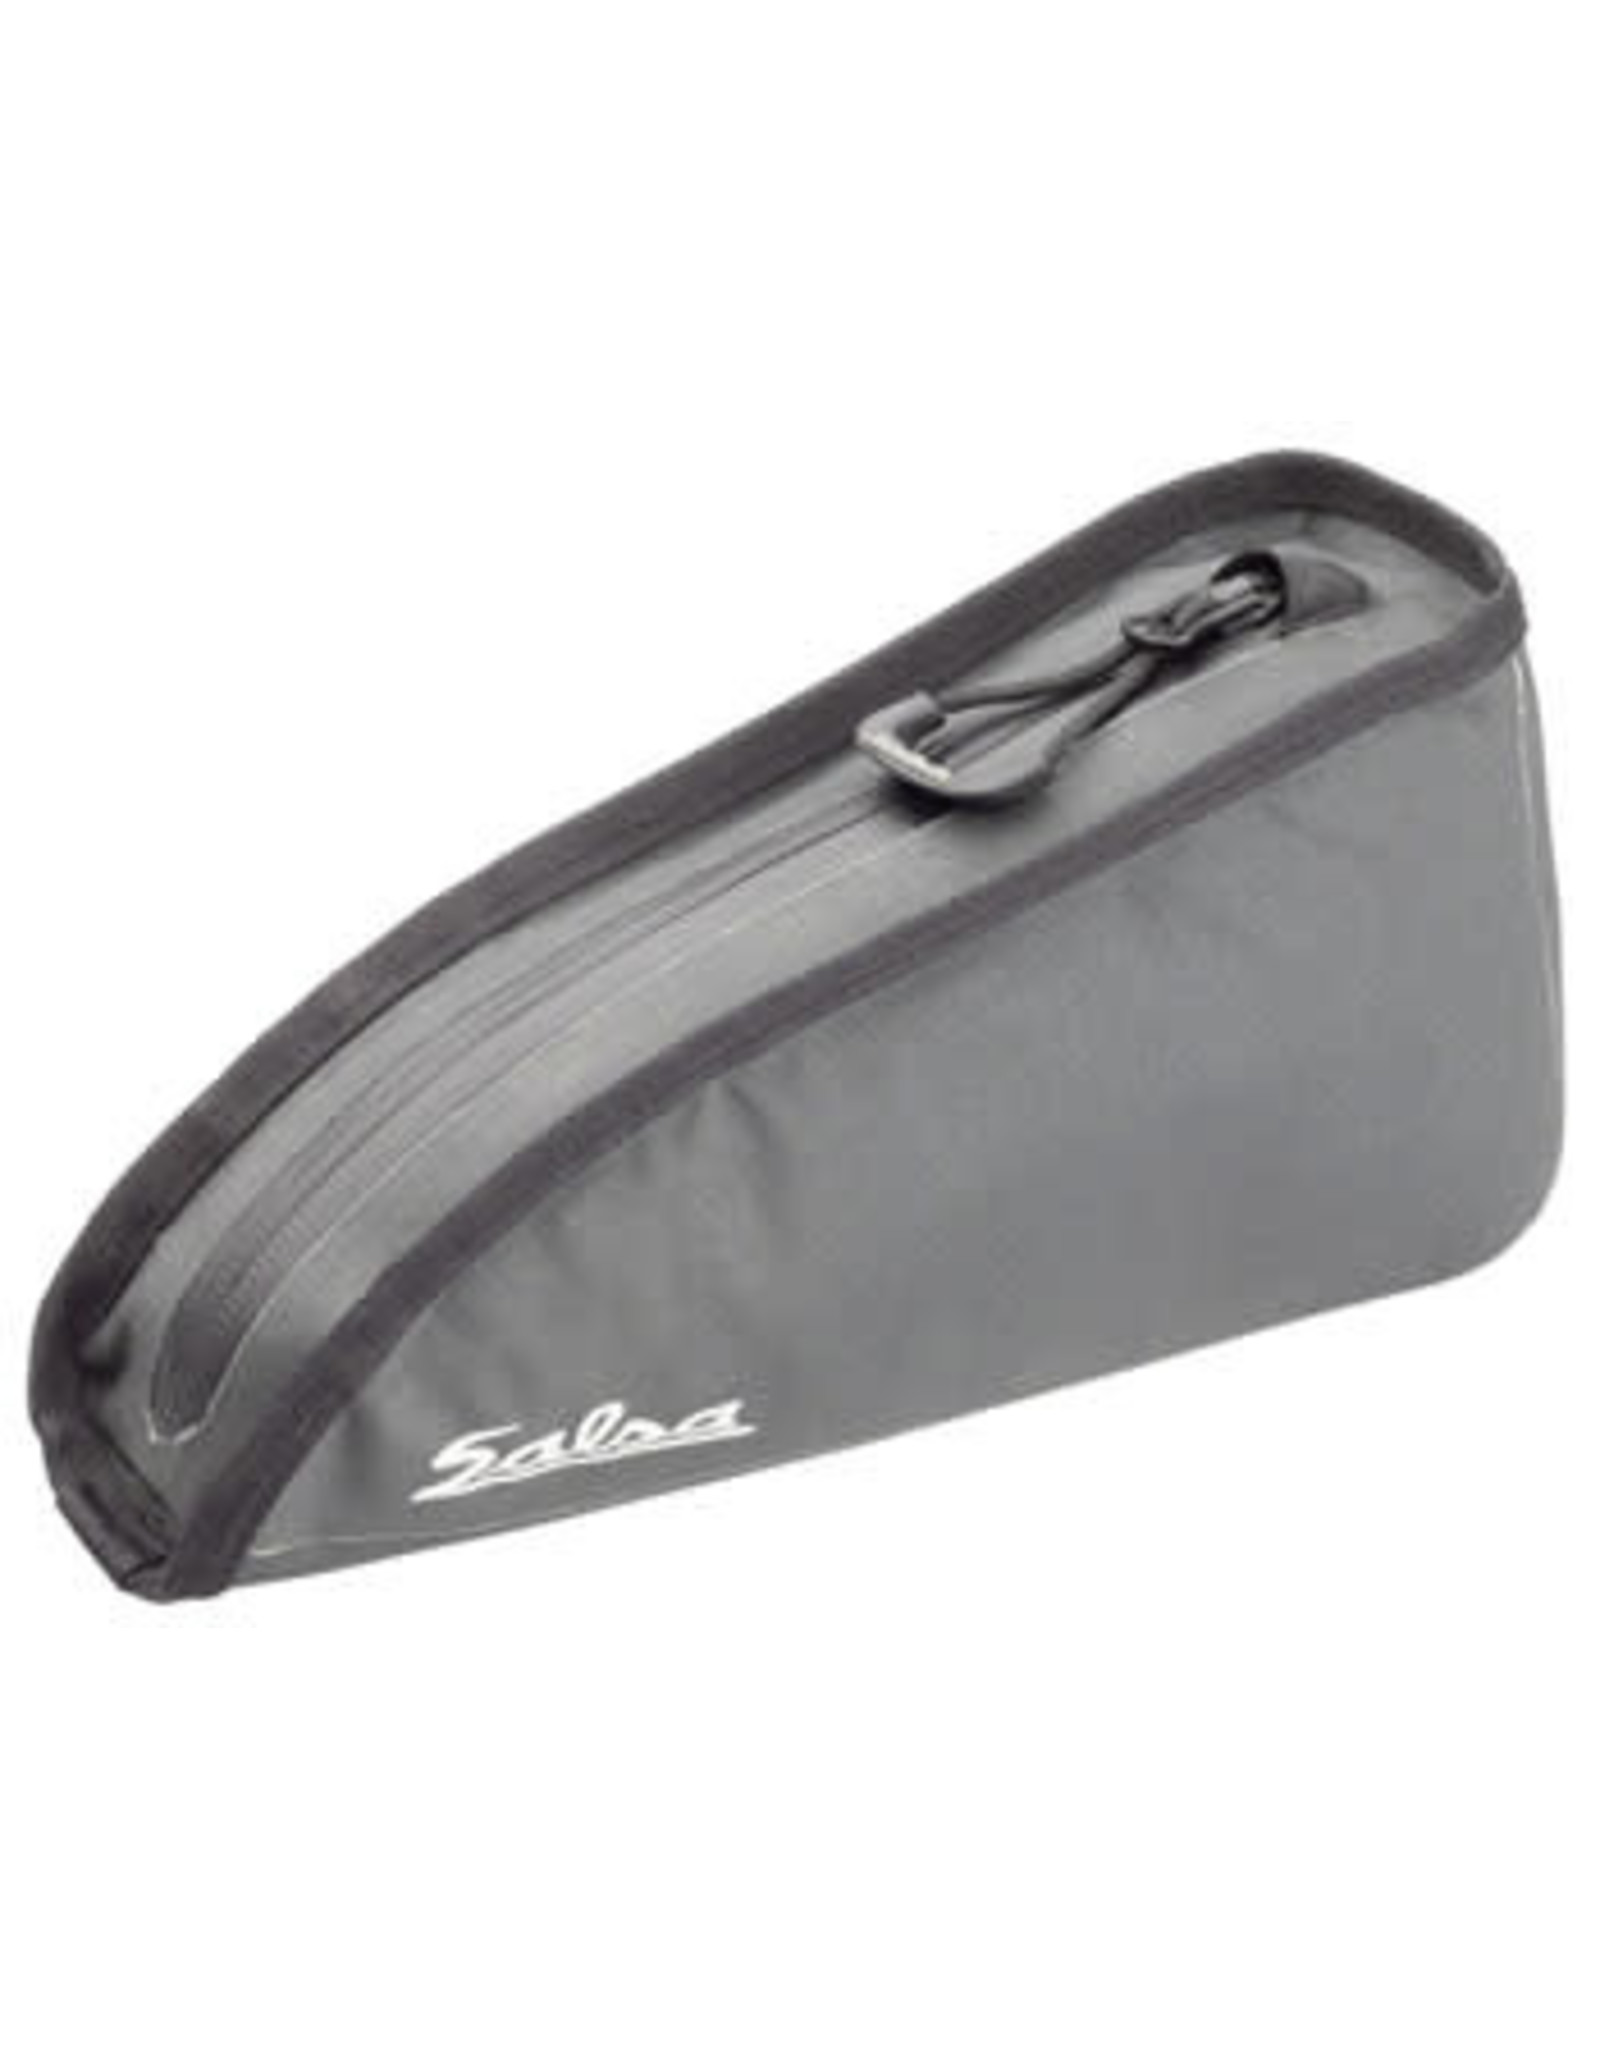 Salsa Salsa EXP Series Direct Mount Top Tube Bag